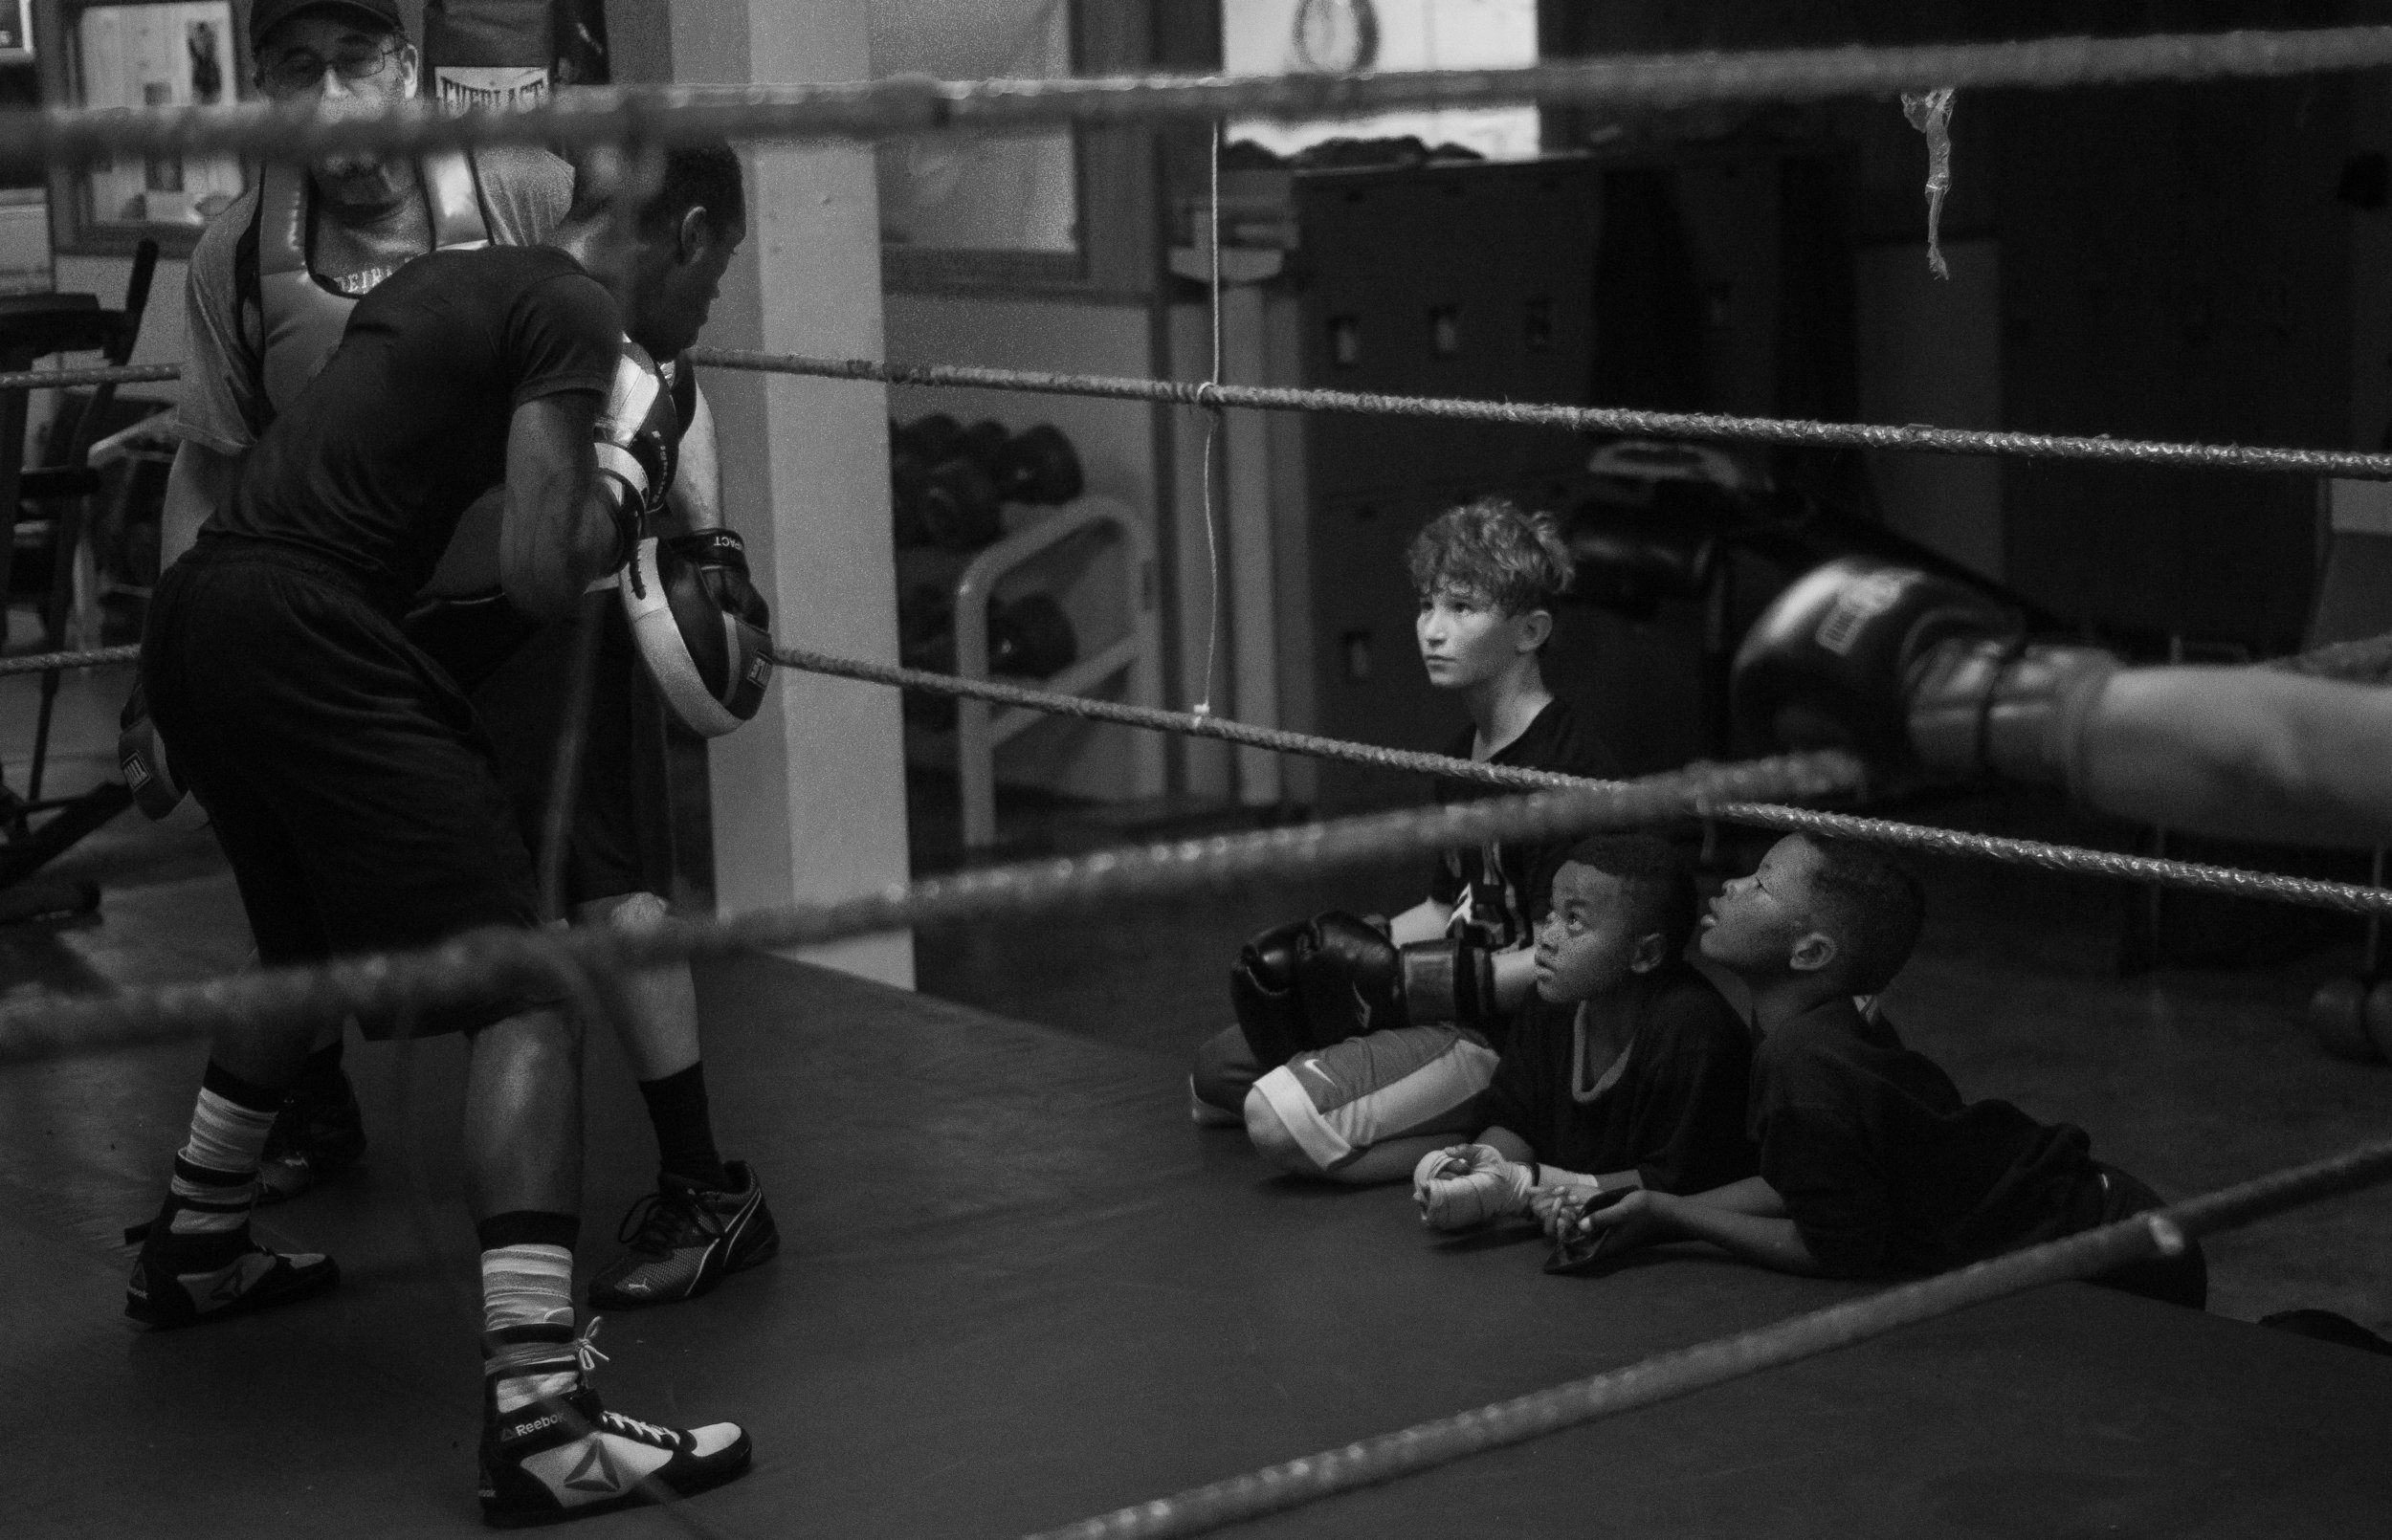 Members of the gym train three times a week from 5–8 p.m. in preparation for their upcoming fights. Spikes works out for the full three hours the gym is open. Community members — including children — are welcome to observe training sessions to see what the gym has to offer.